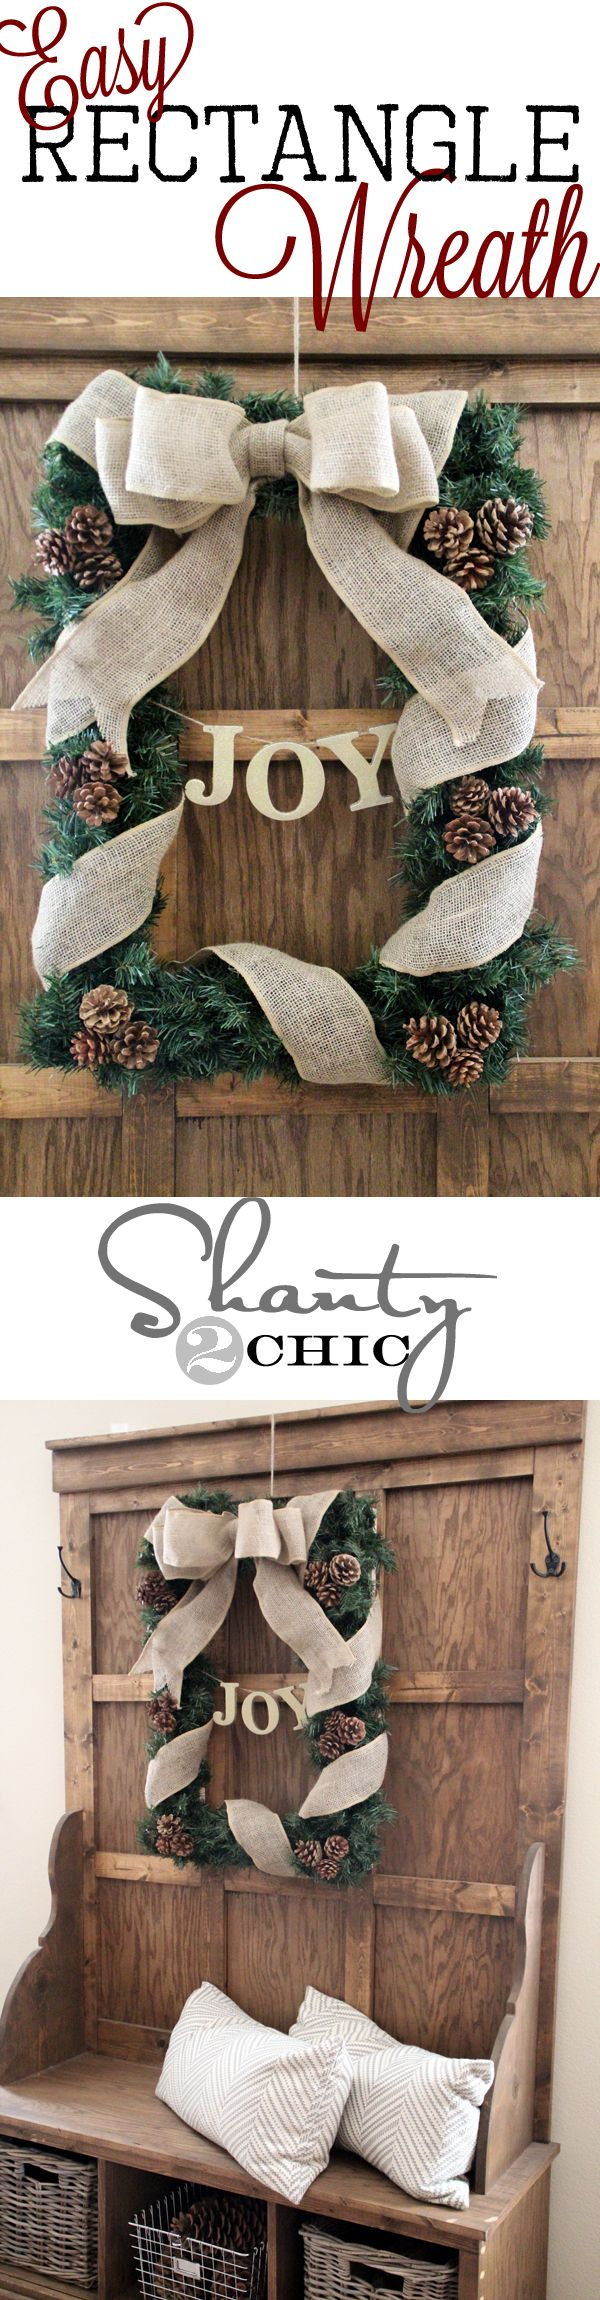 Easy DIY Rectangle Wreath!  This is too cute! - Could probably use a flat wood picture frame, depending on the size you want.